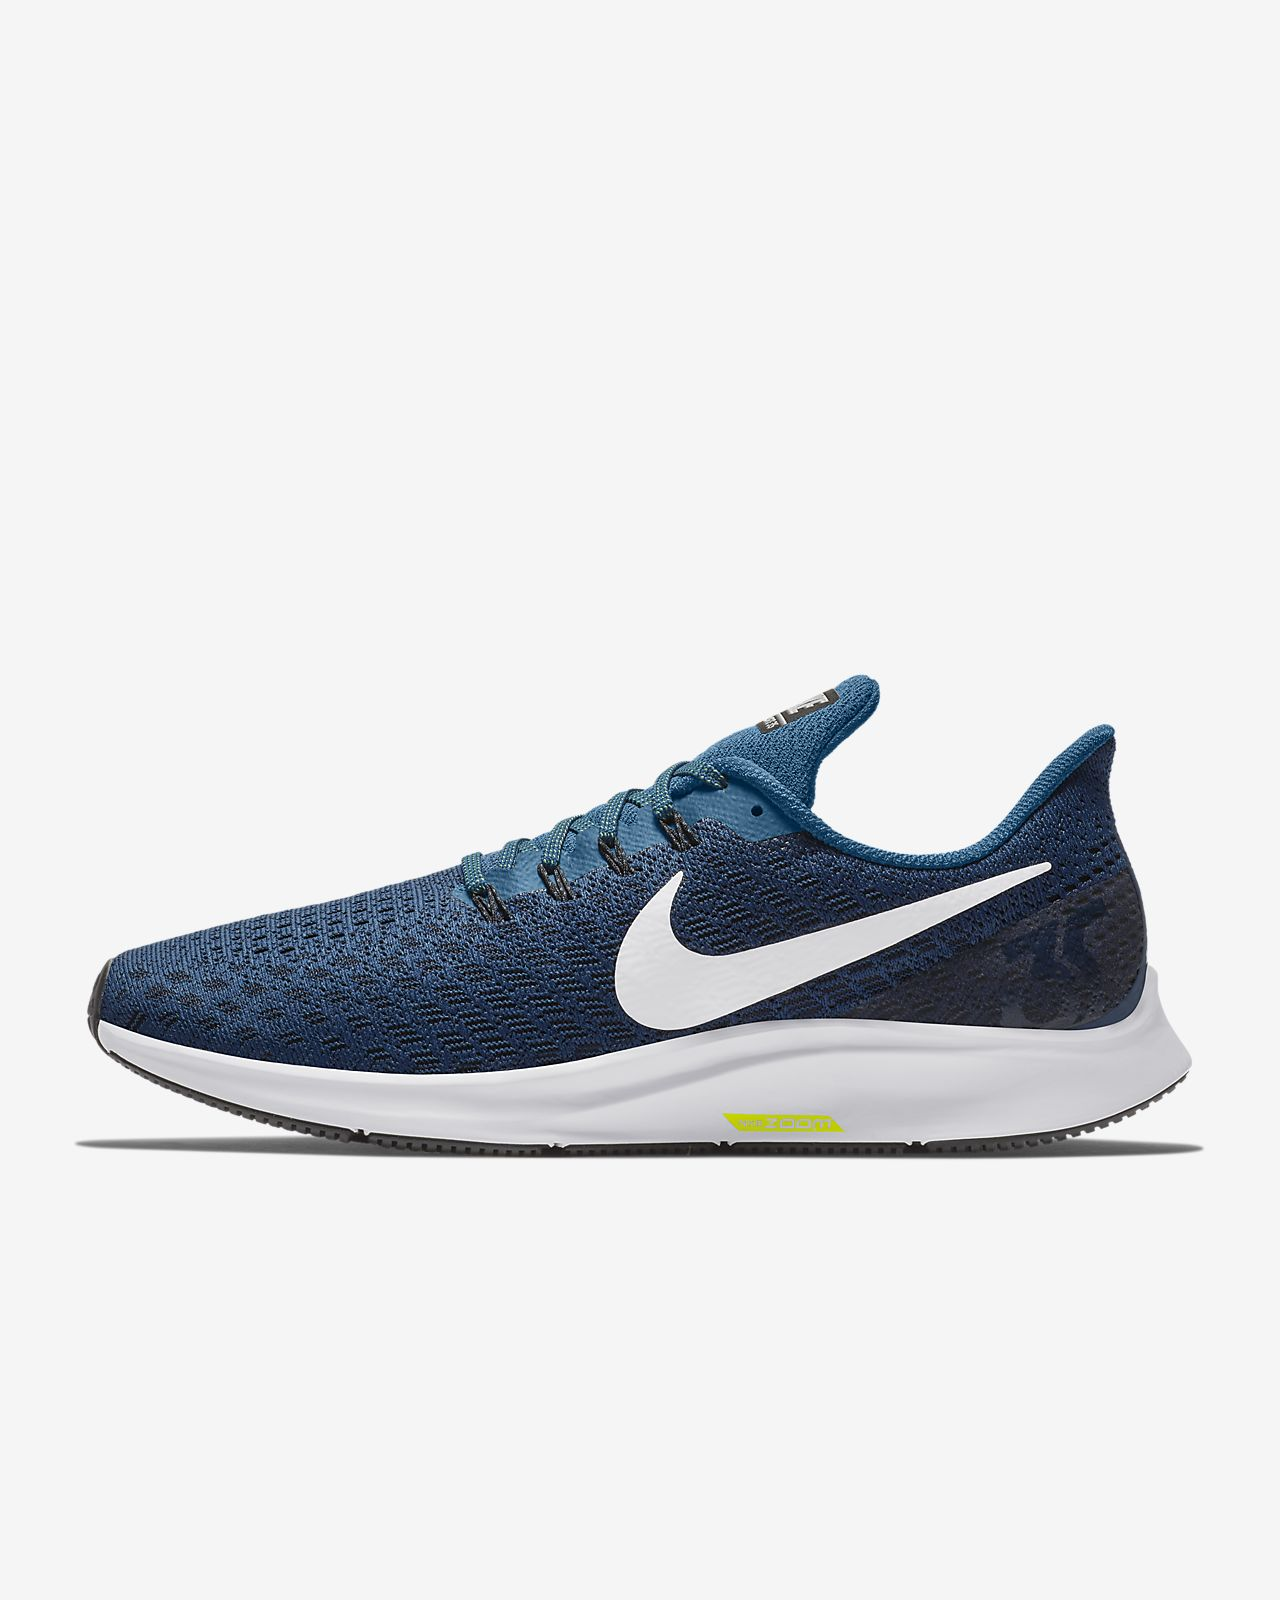 promo code dba05 130cd ... Chaussure de running Nike Air Zoom Pegasus 35 pour Homme